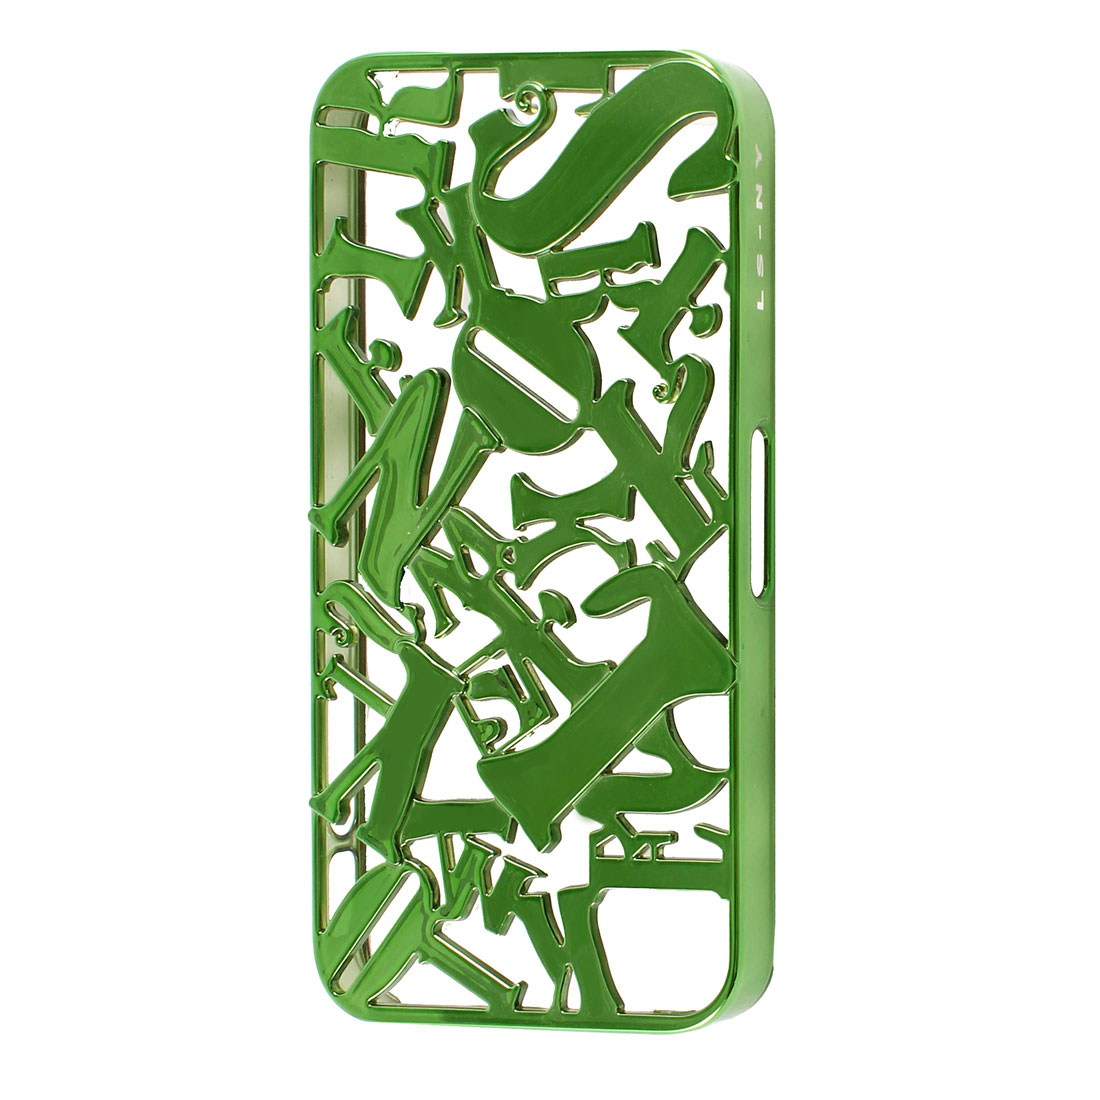 Green Plastic Cutt Off Letter Hard Back Case Cover Guard for iPhone 4 4S 4G 4GS